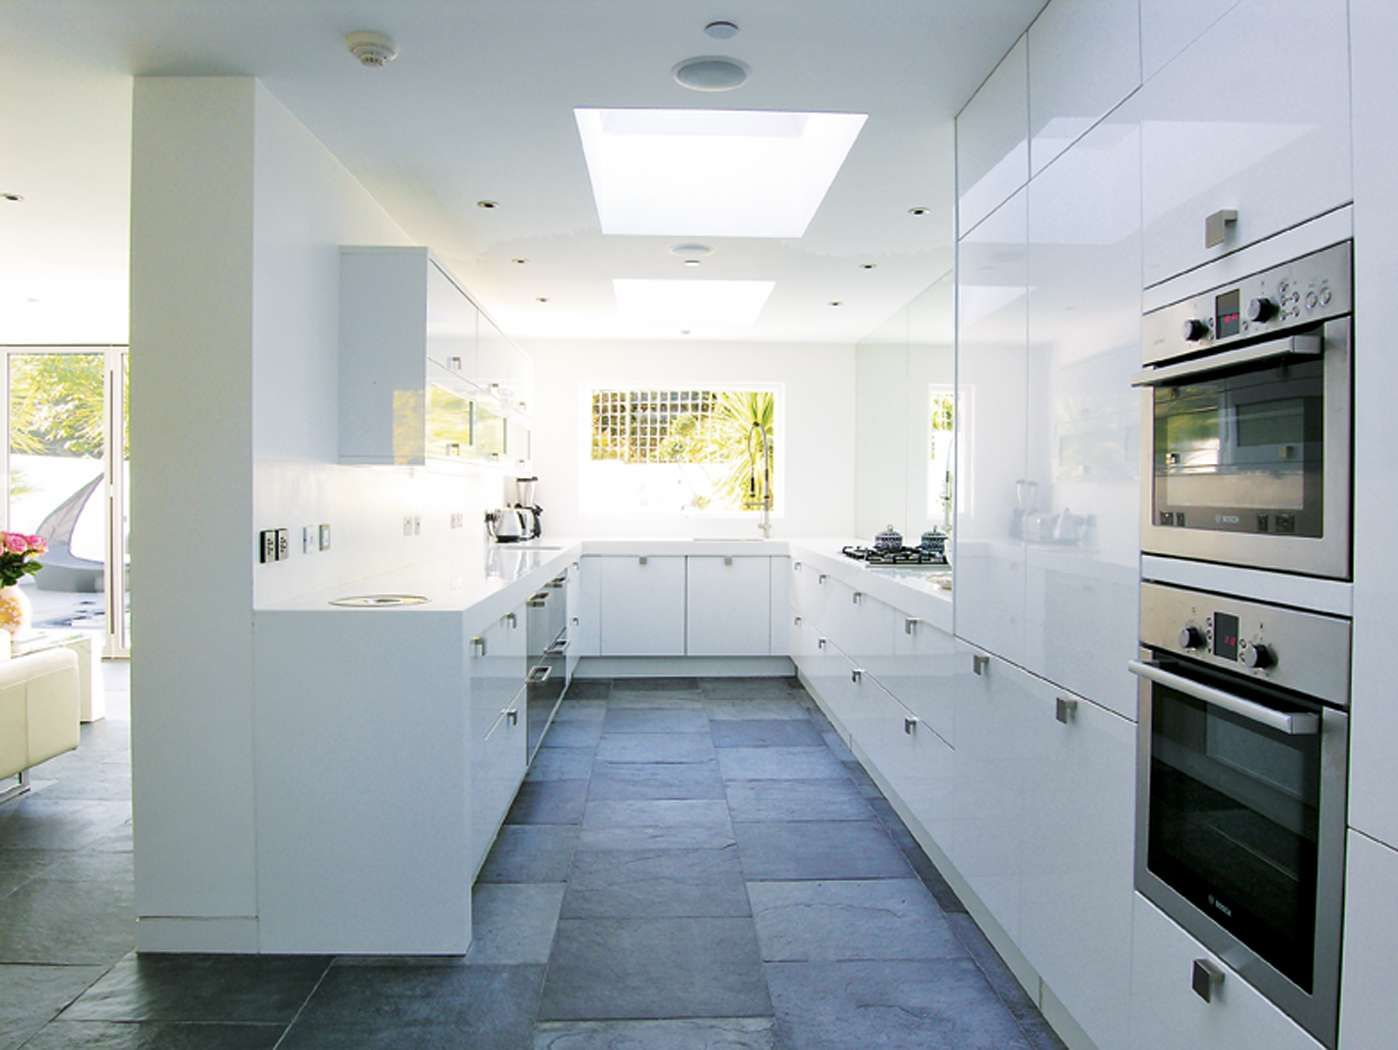 kitchen galley diner ideas - Google Search | Kitchen inspiration ...